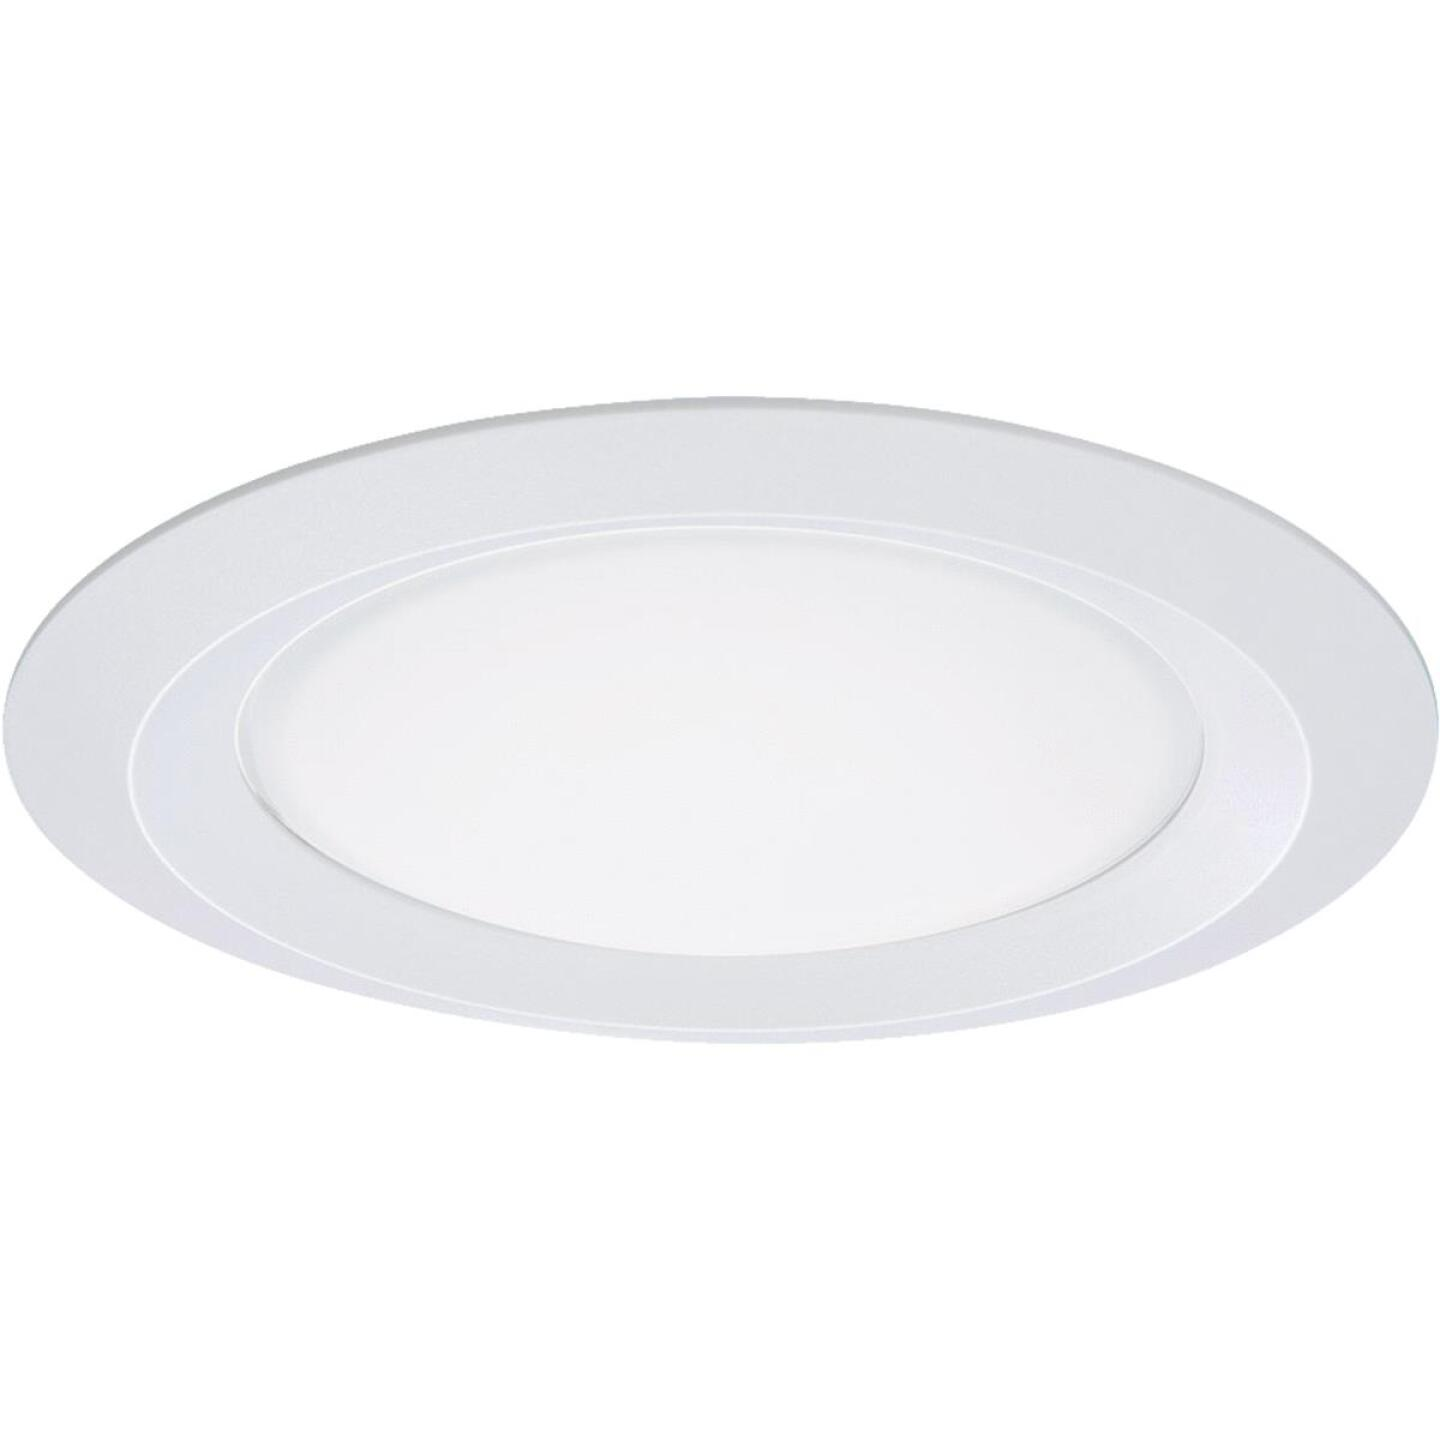 Halo 5 In. White Shower Recessed Fixture Trim Image 1